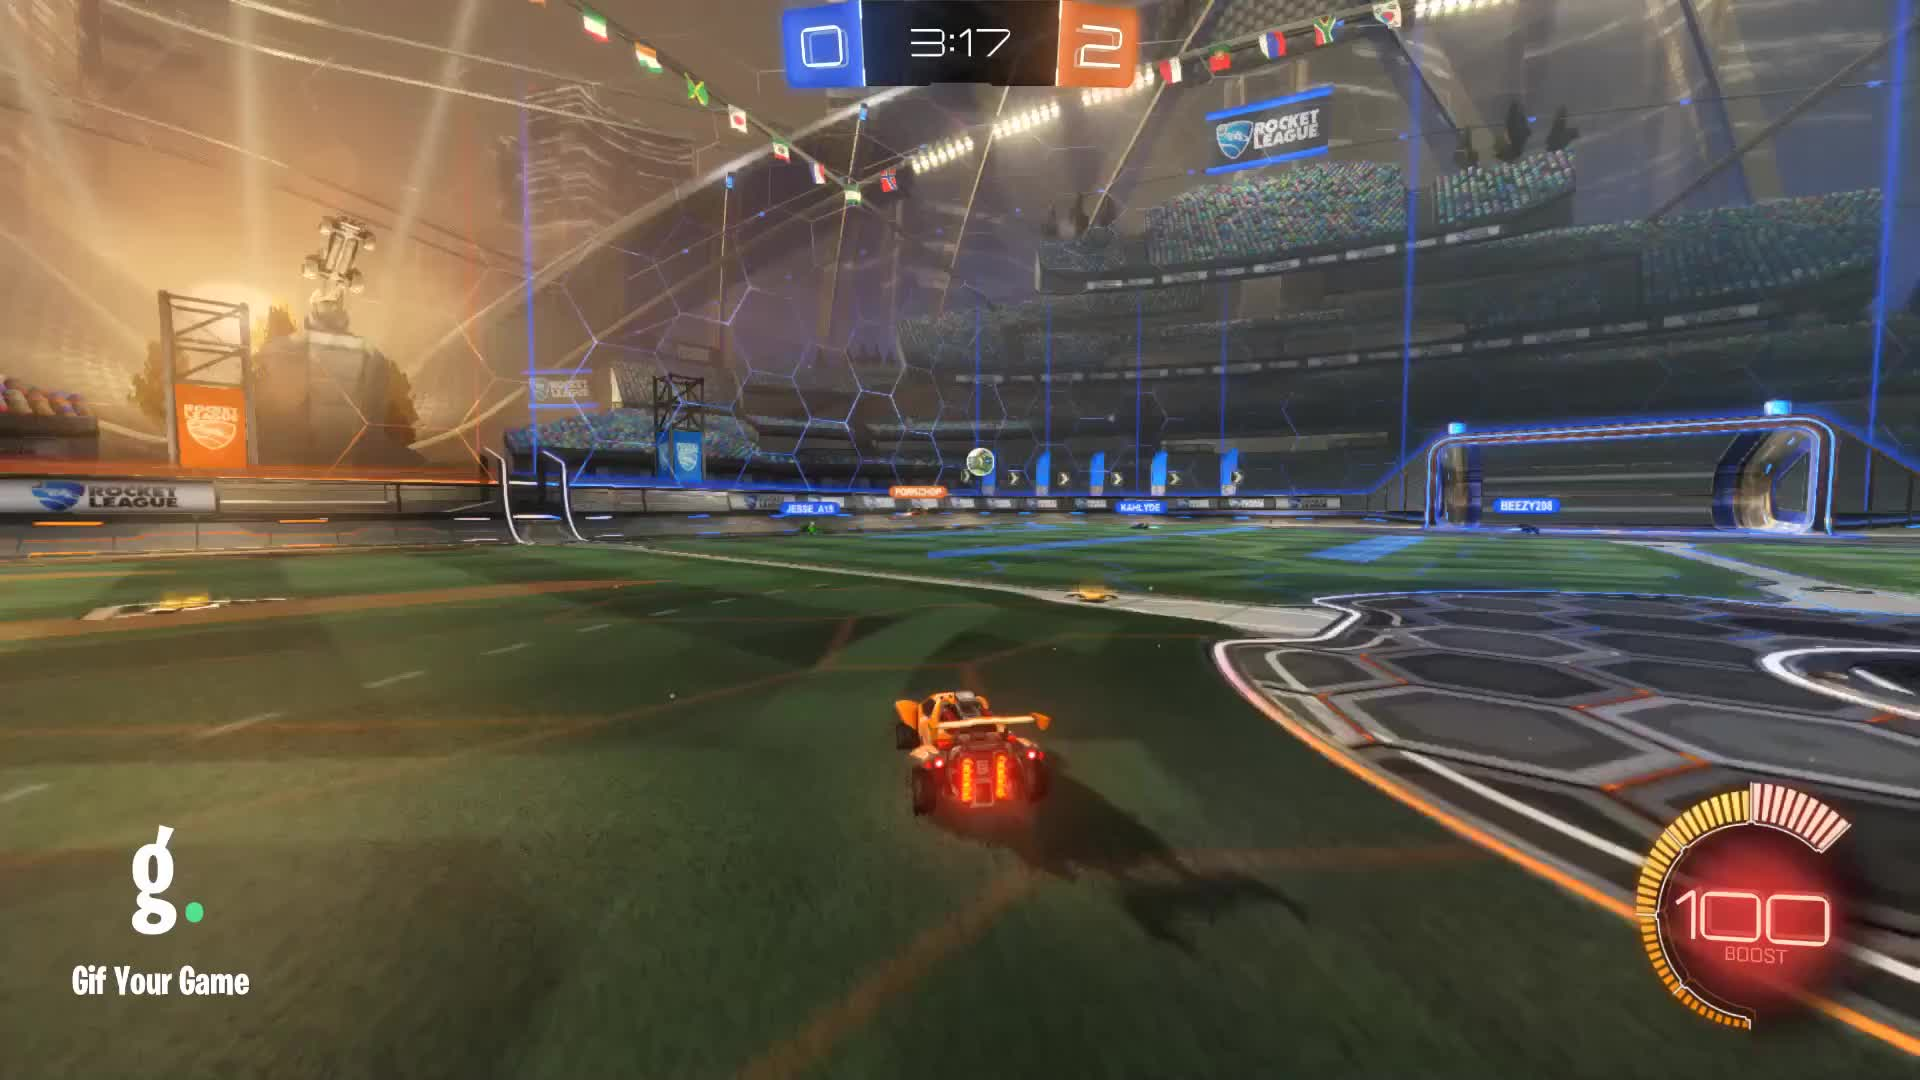 Gif Your Game, GifYourGame, Goal, Rocket League, RocketLeague, YOUgotGREENED, Remixed Goal 3: YOUgotGREENED GIFs